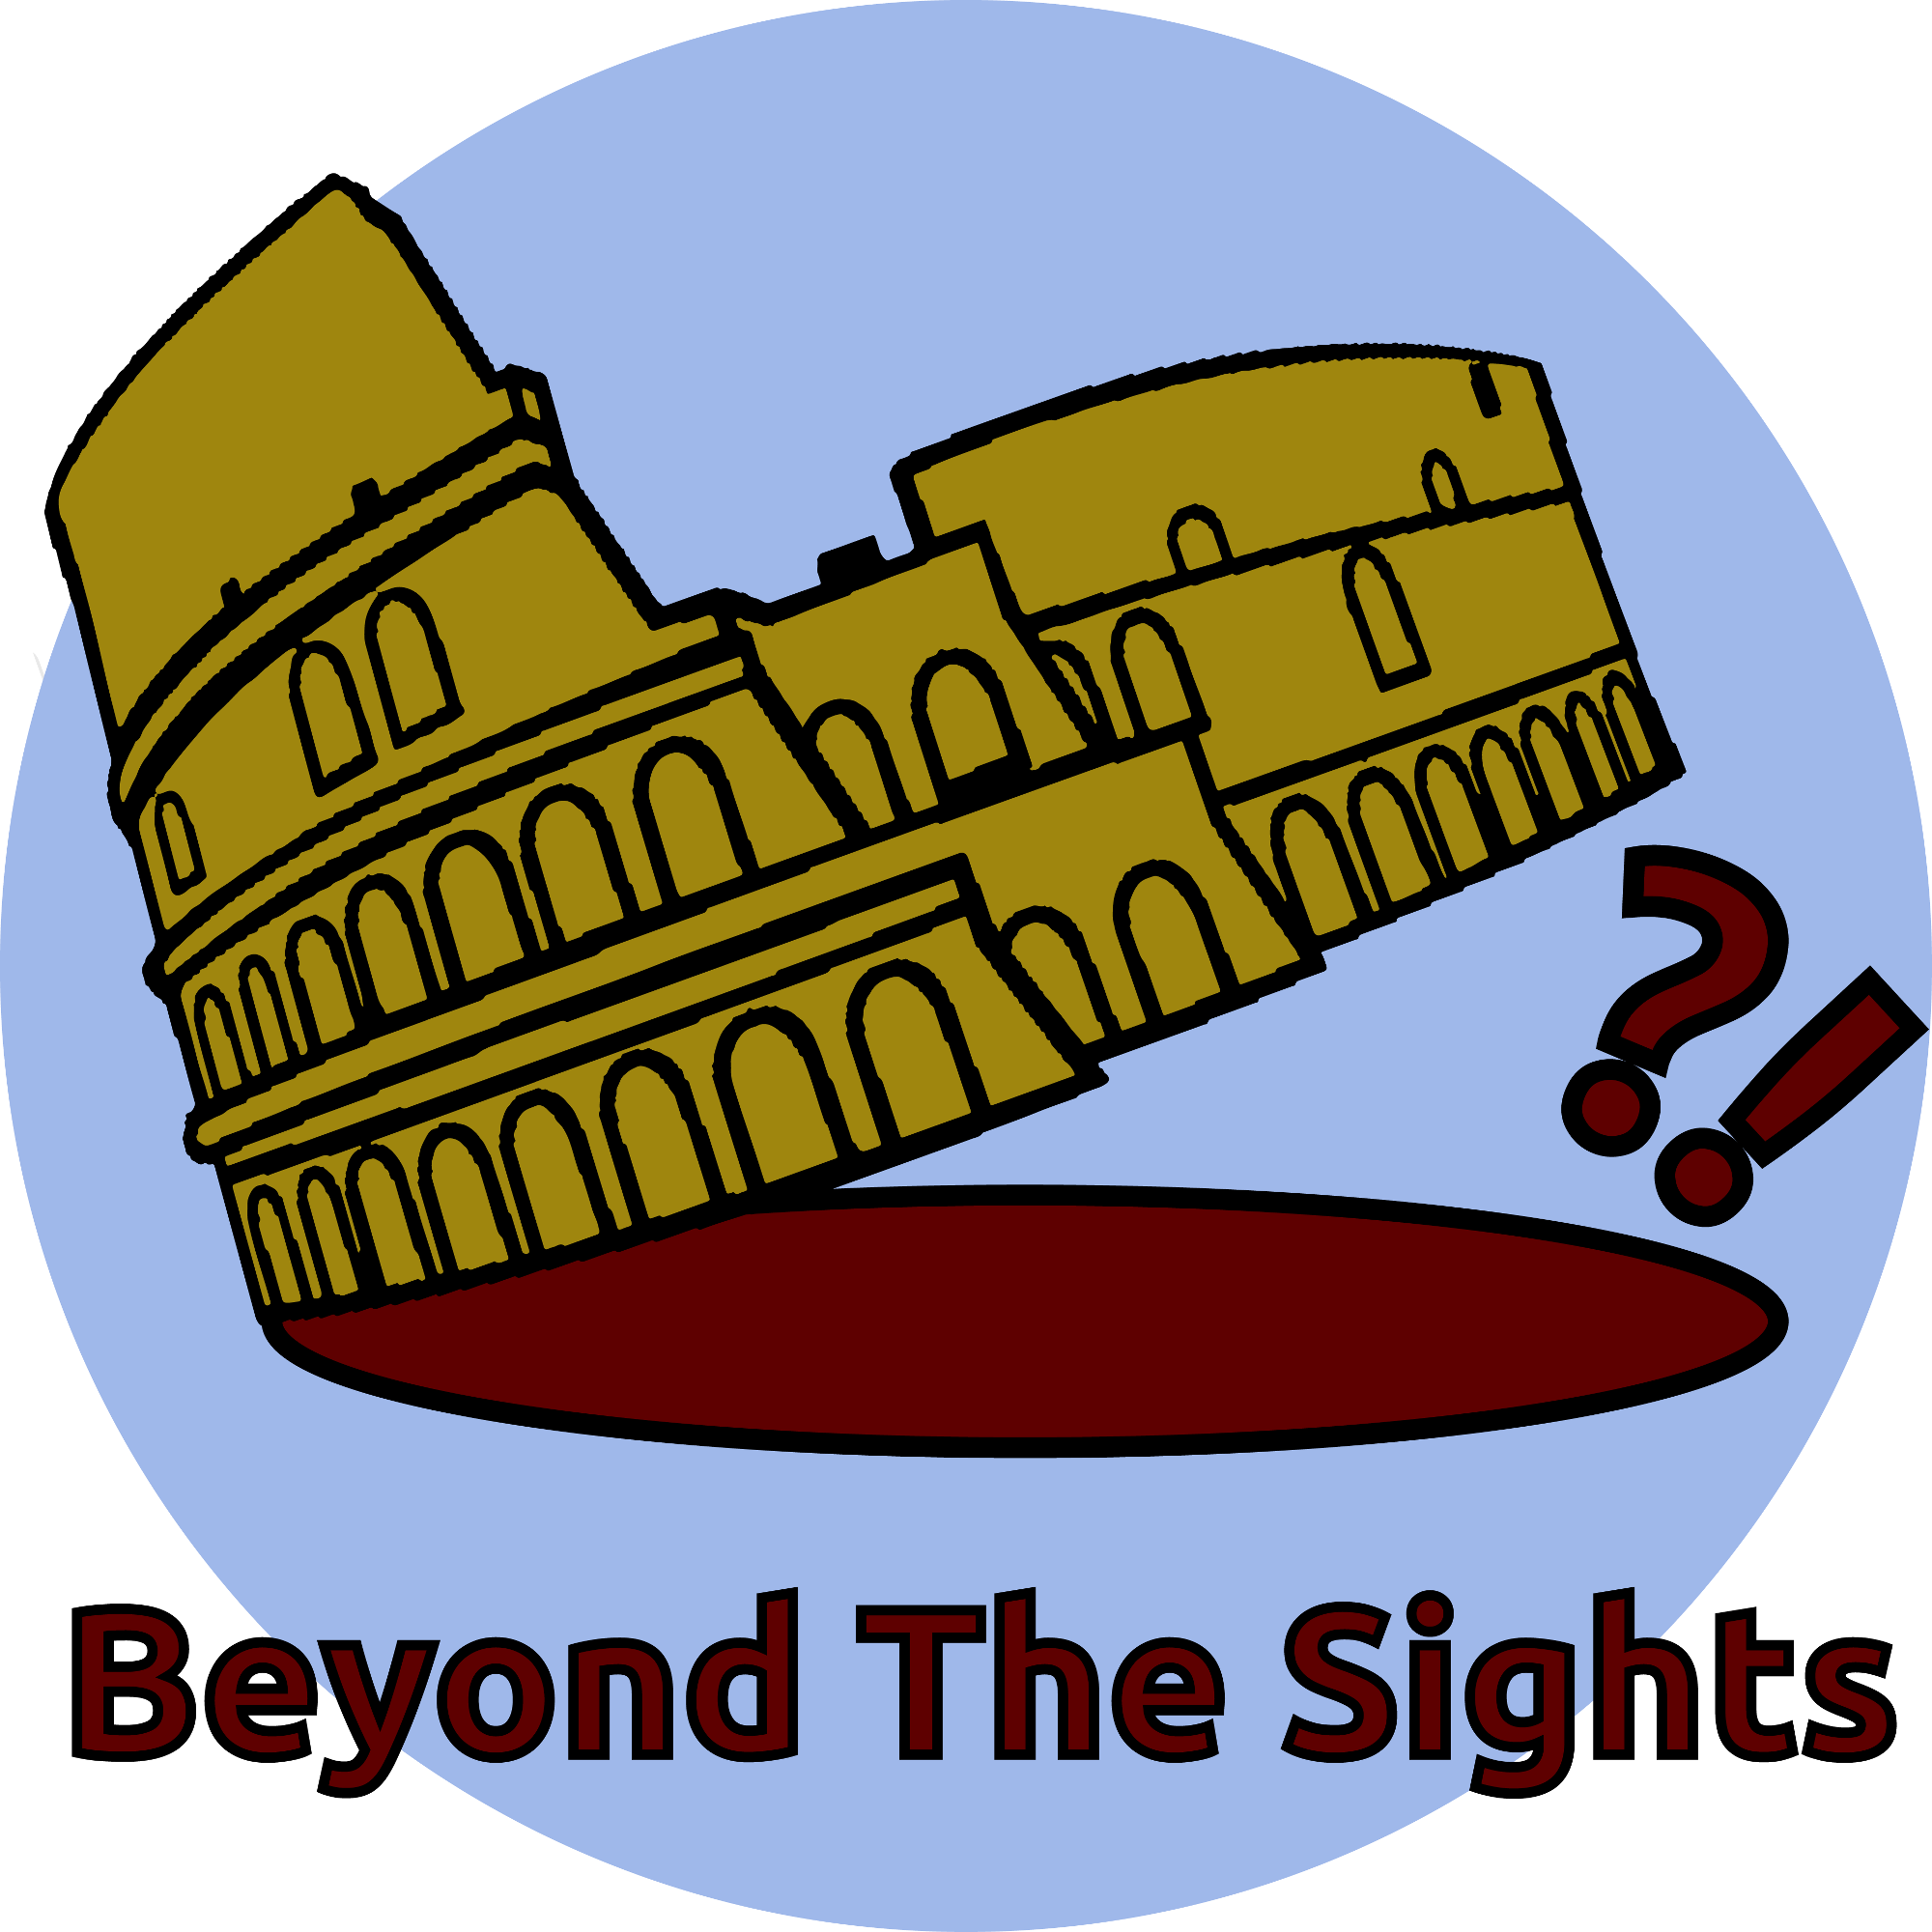 Beyond The Sights show image